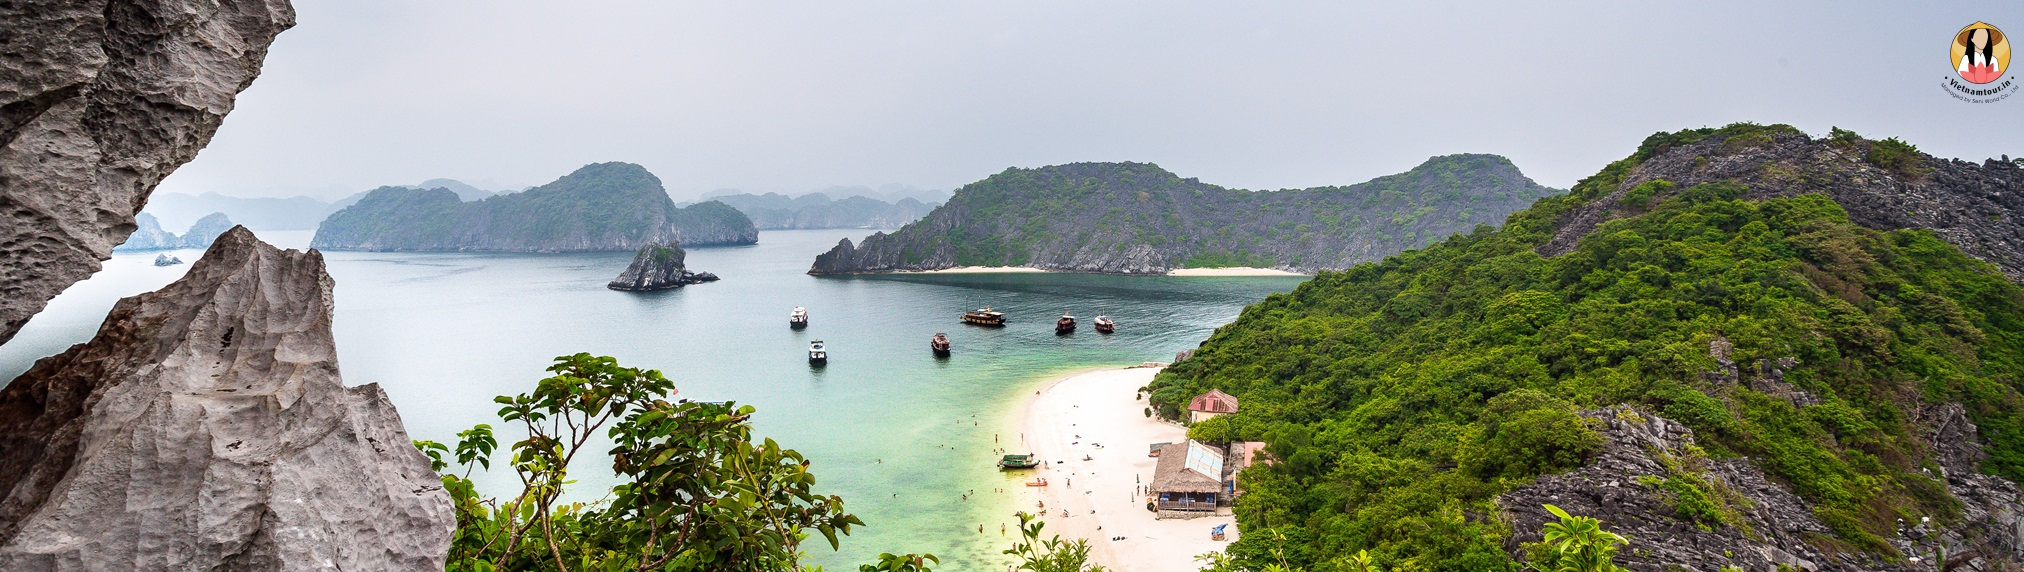 vietnam tour packages from delhi